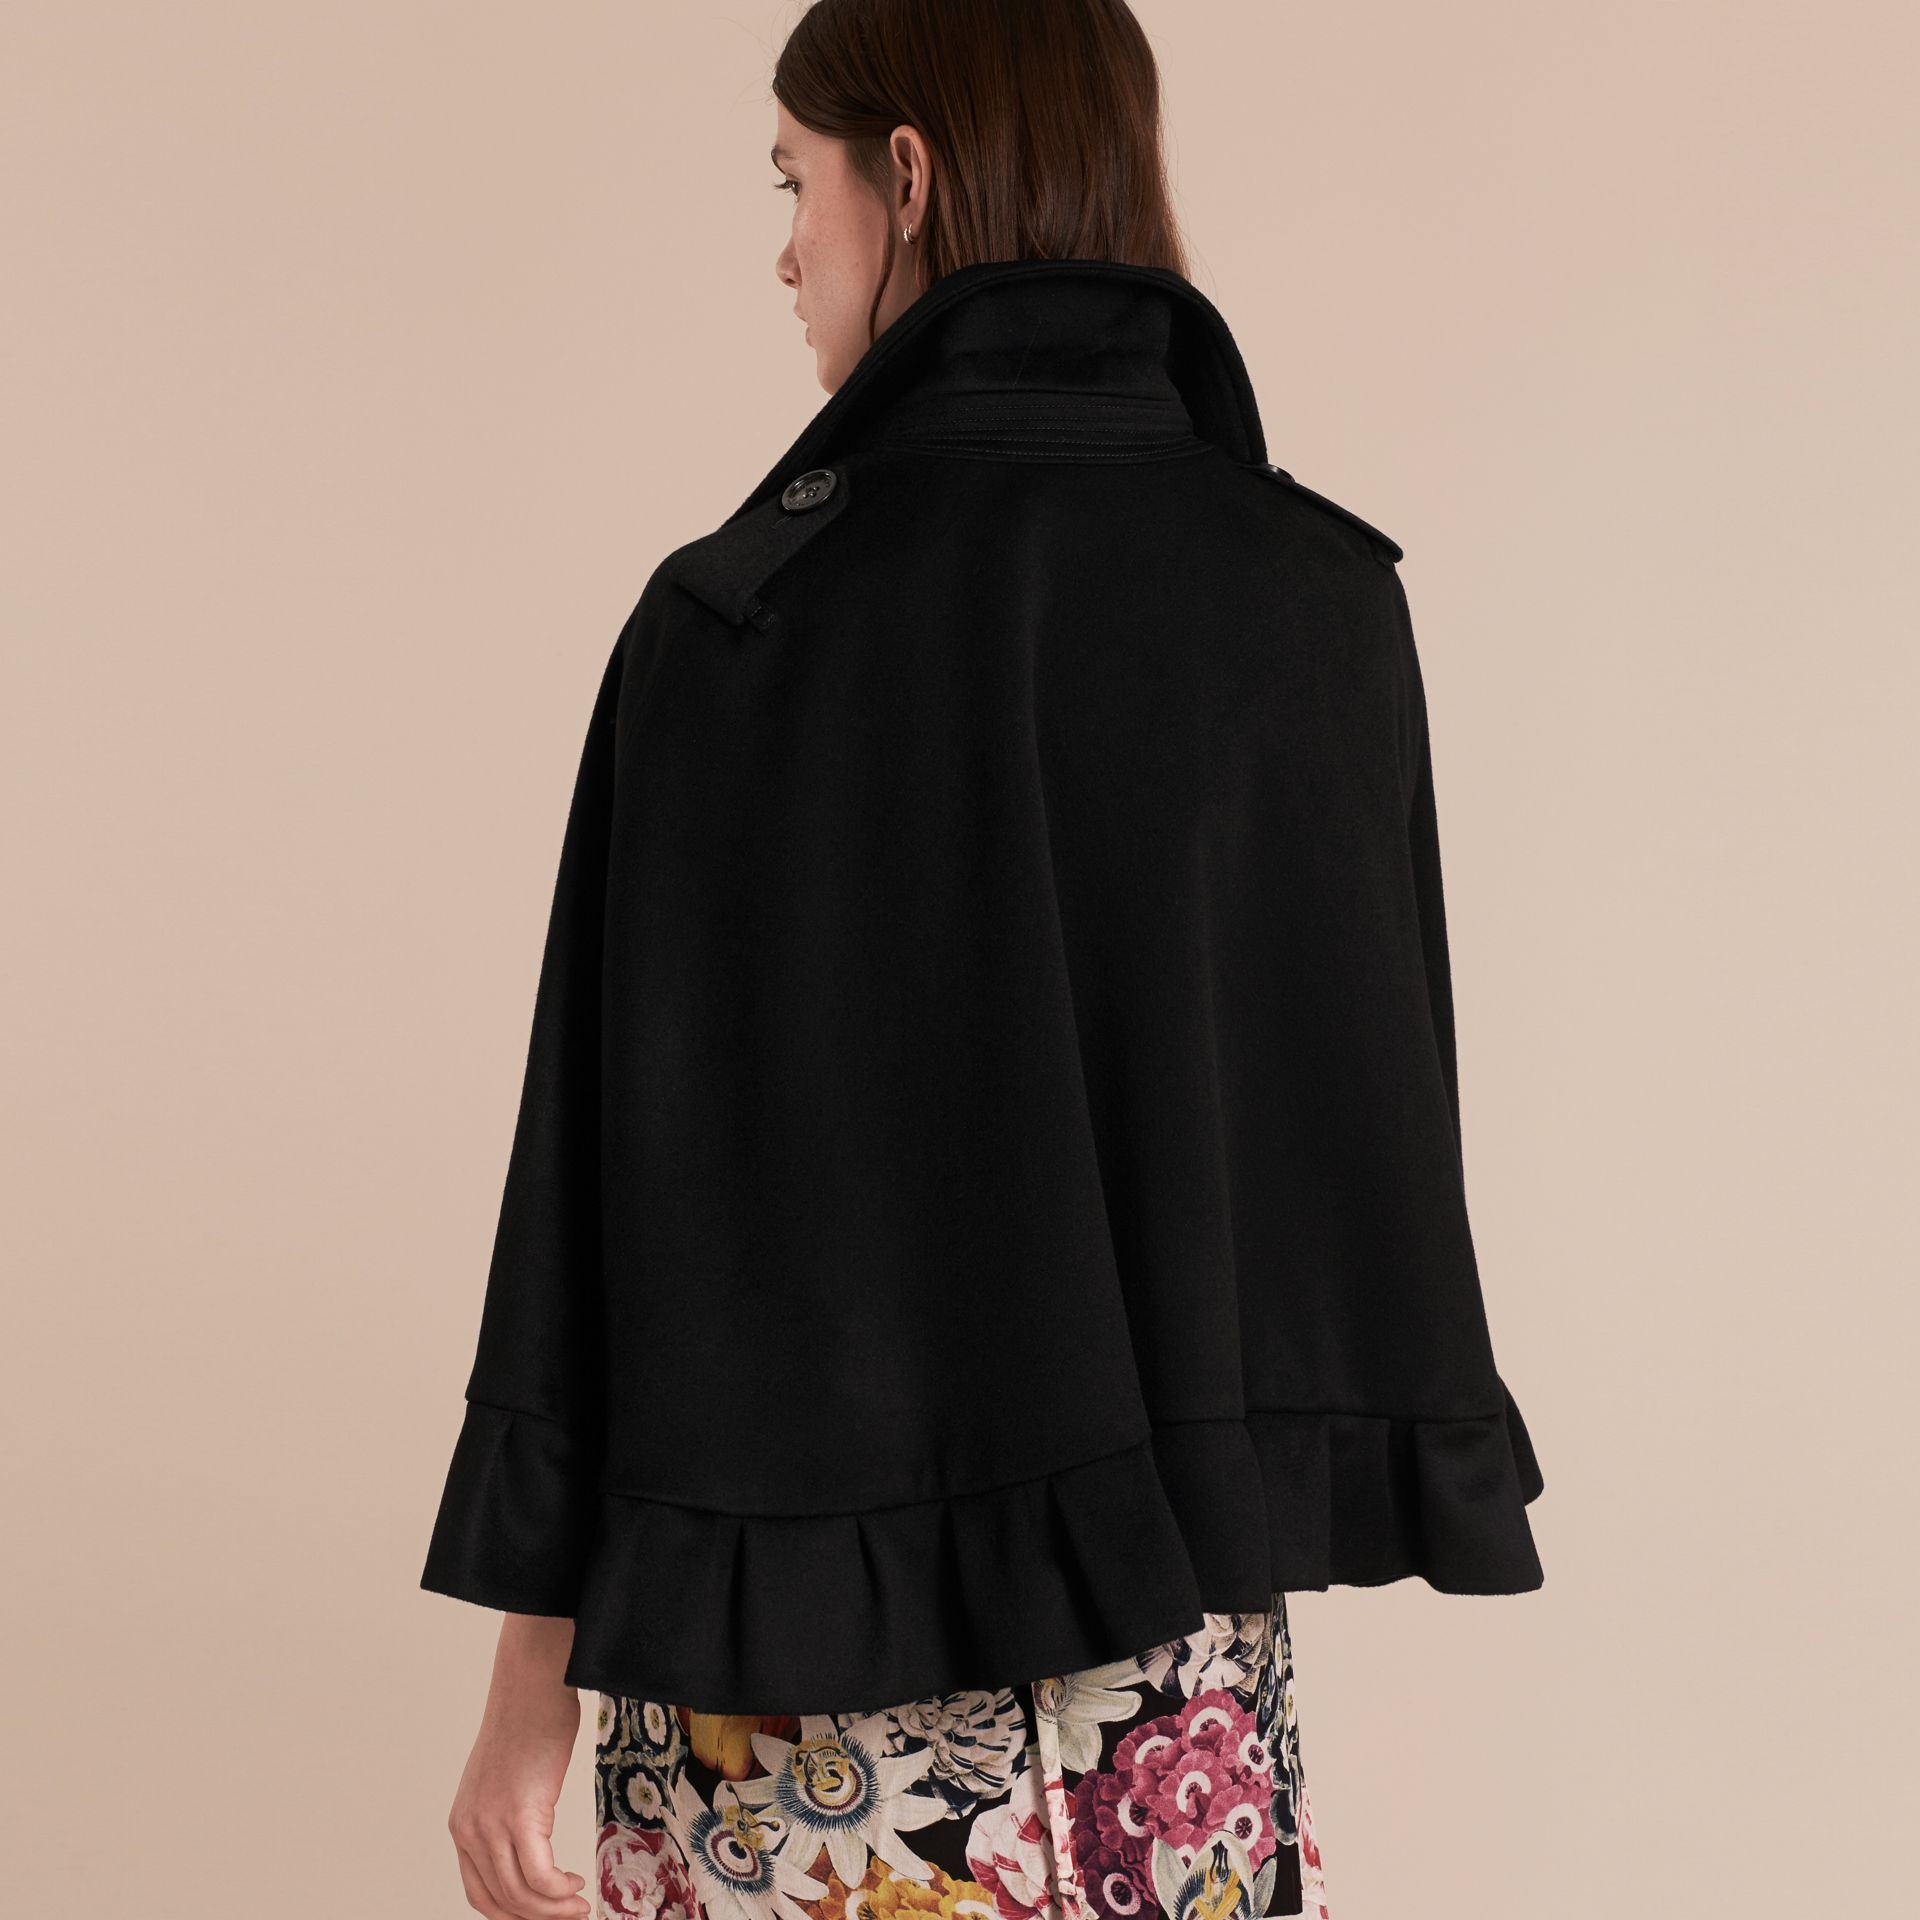 Ruffle Detail Cashmere Cape - gallery image 3